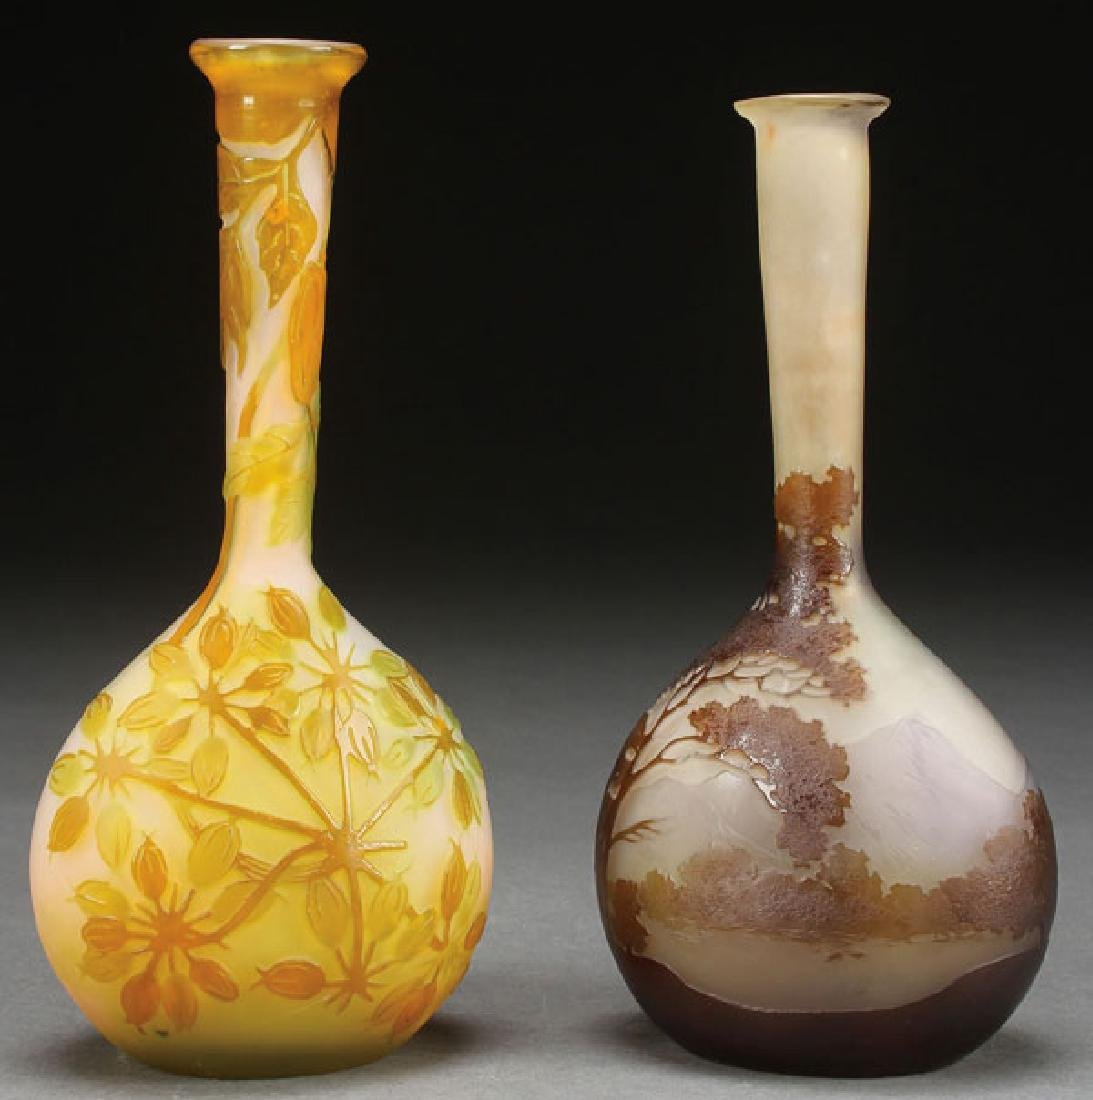 A PAIR OF GALLE FRENCH CAMEO ART GLASS VASES